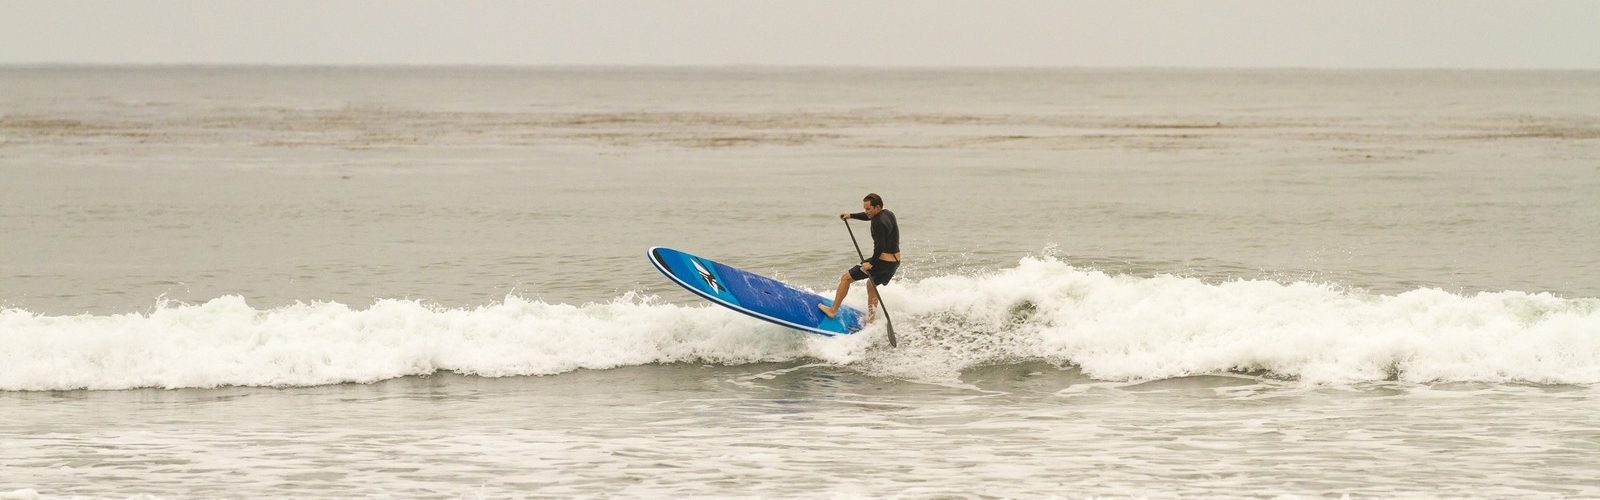 DuraGlide-action-surf-02-lg_jpg_1600x1600__generated